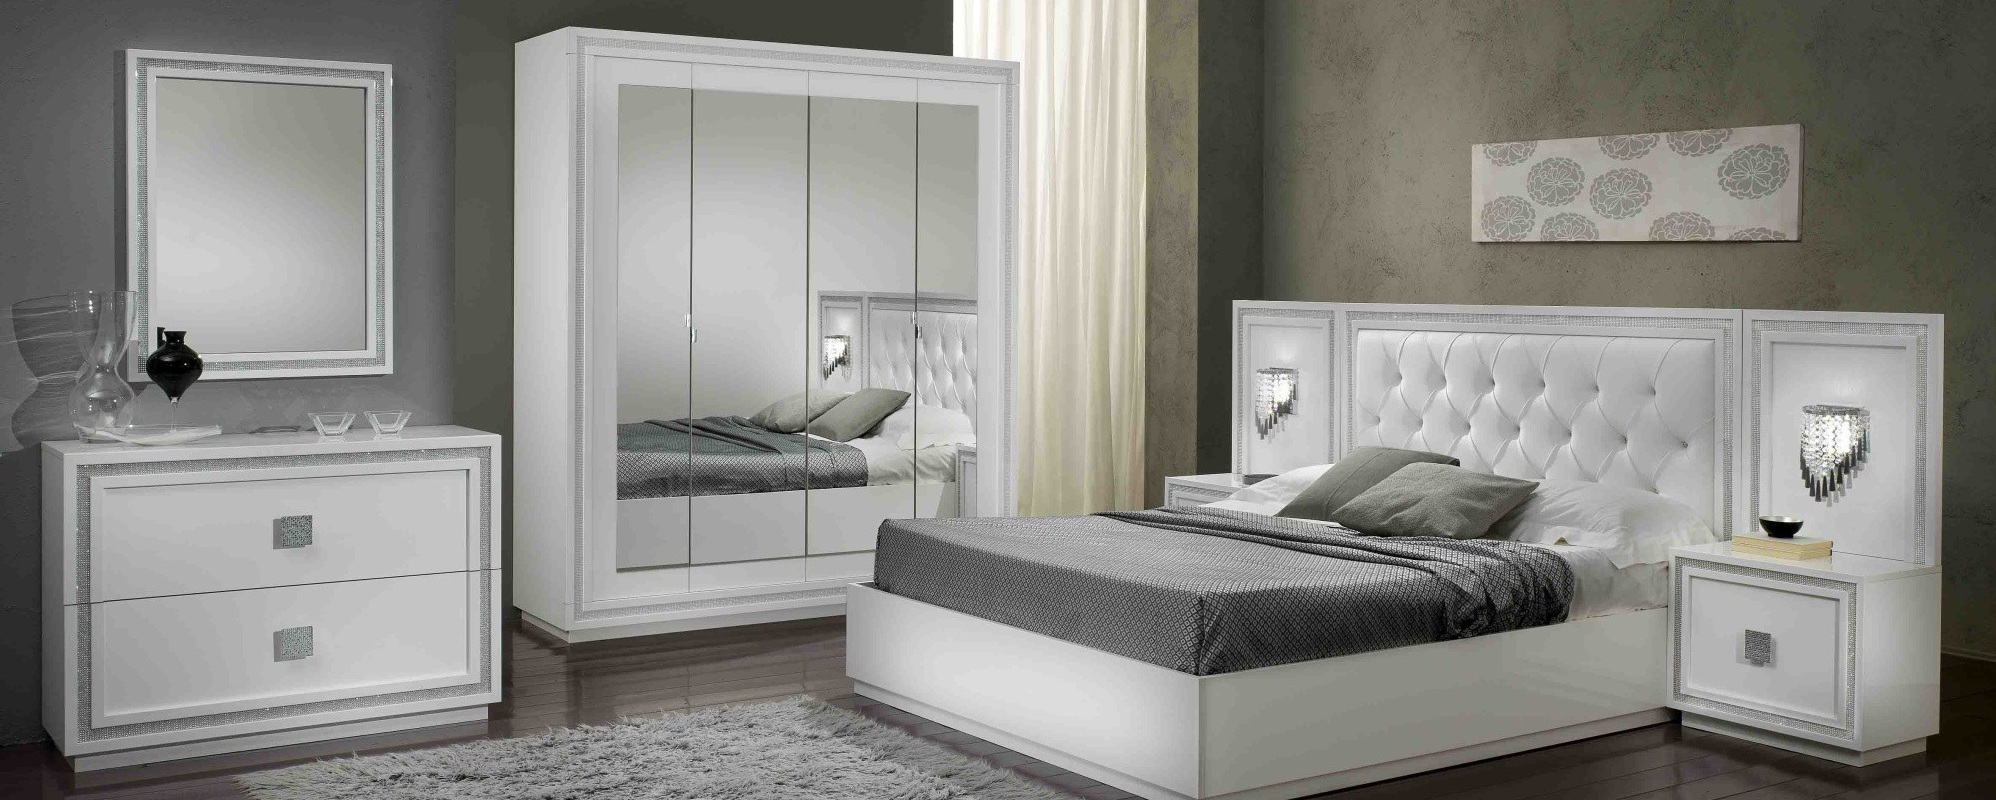 t te de lit conforama au meilleur prix. Black Bedroom Furniture Sets. Home Design Ideas